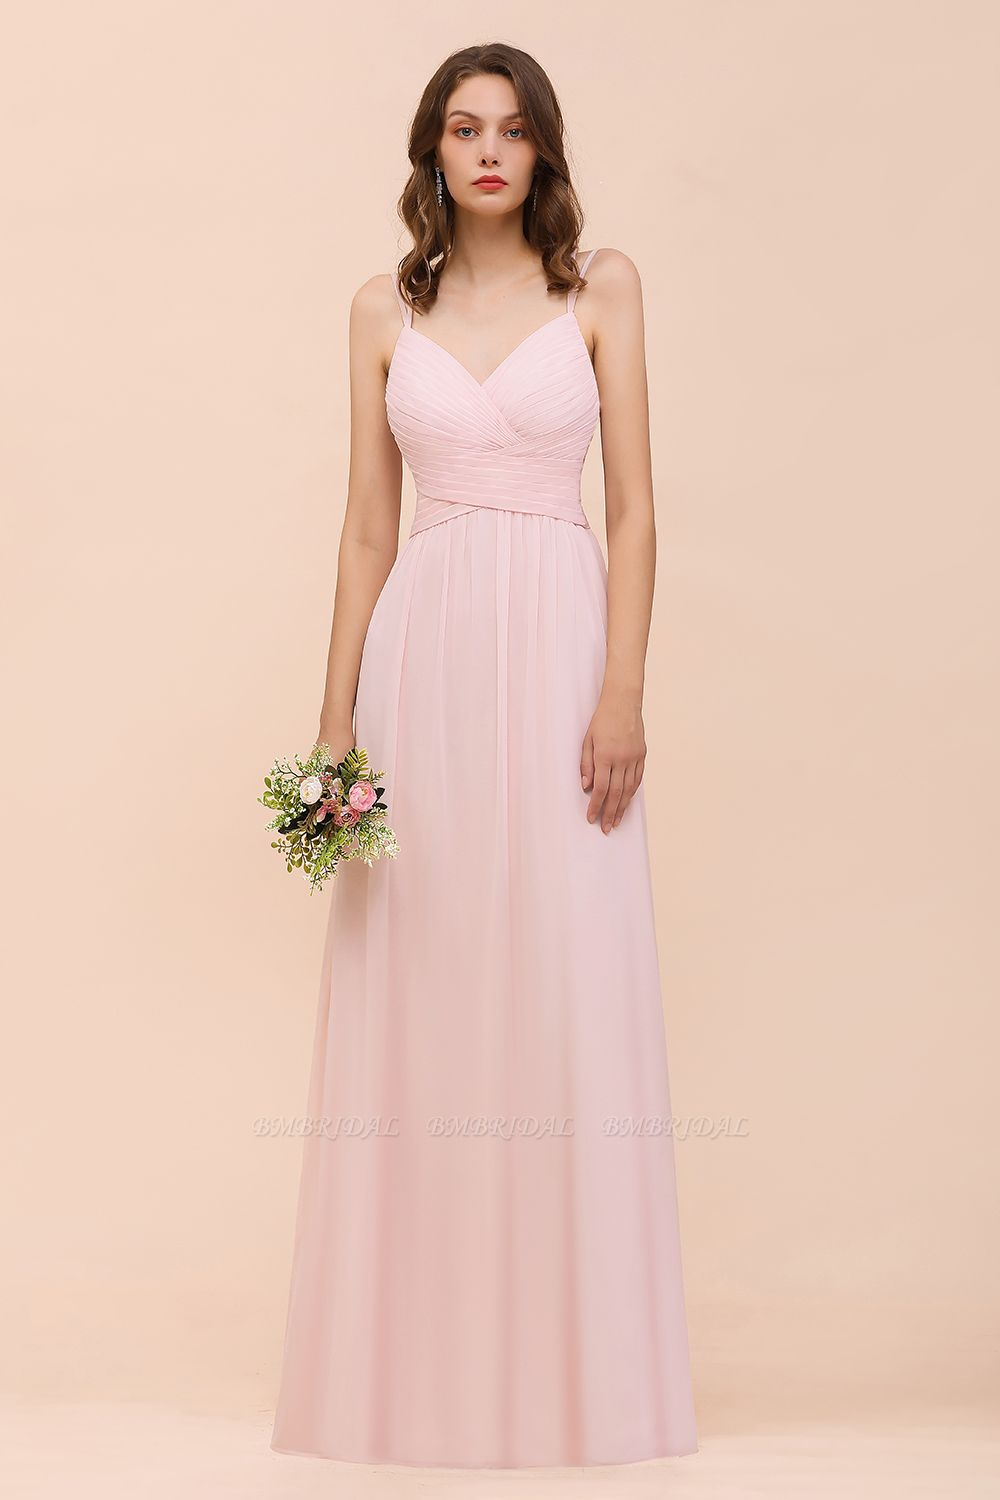 Gorgeous Chiffon Ruffle Blushing Pink Bridesmaid Dress with Spaghetti Straps